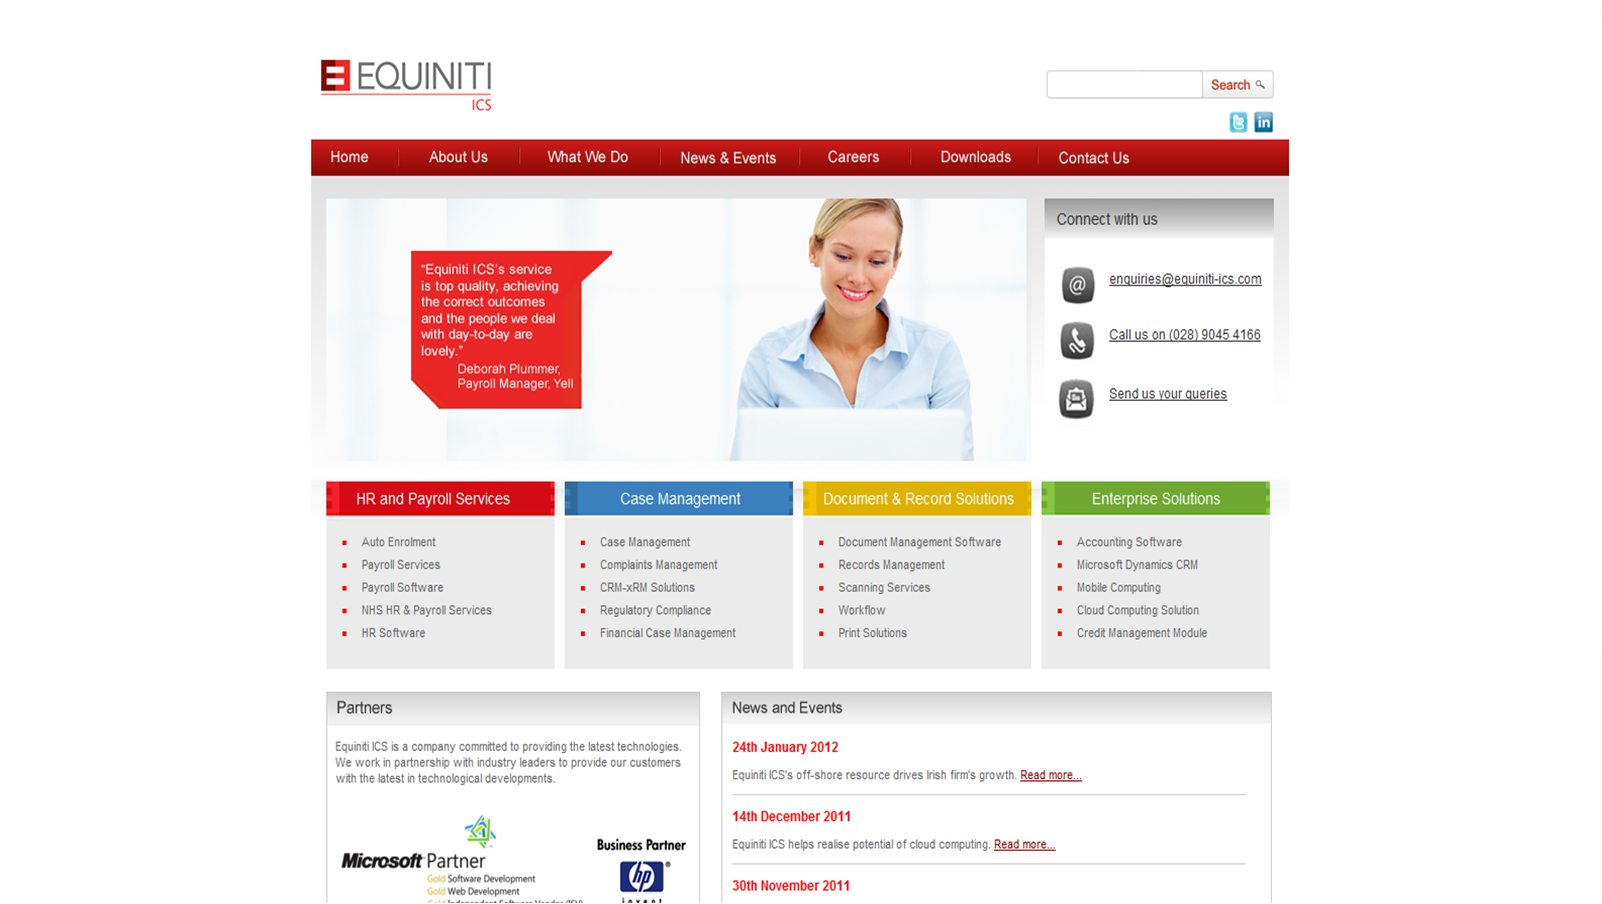 Equiniti-ICS.com AdWords Training